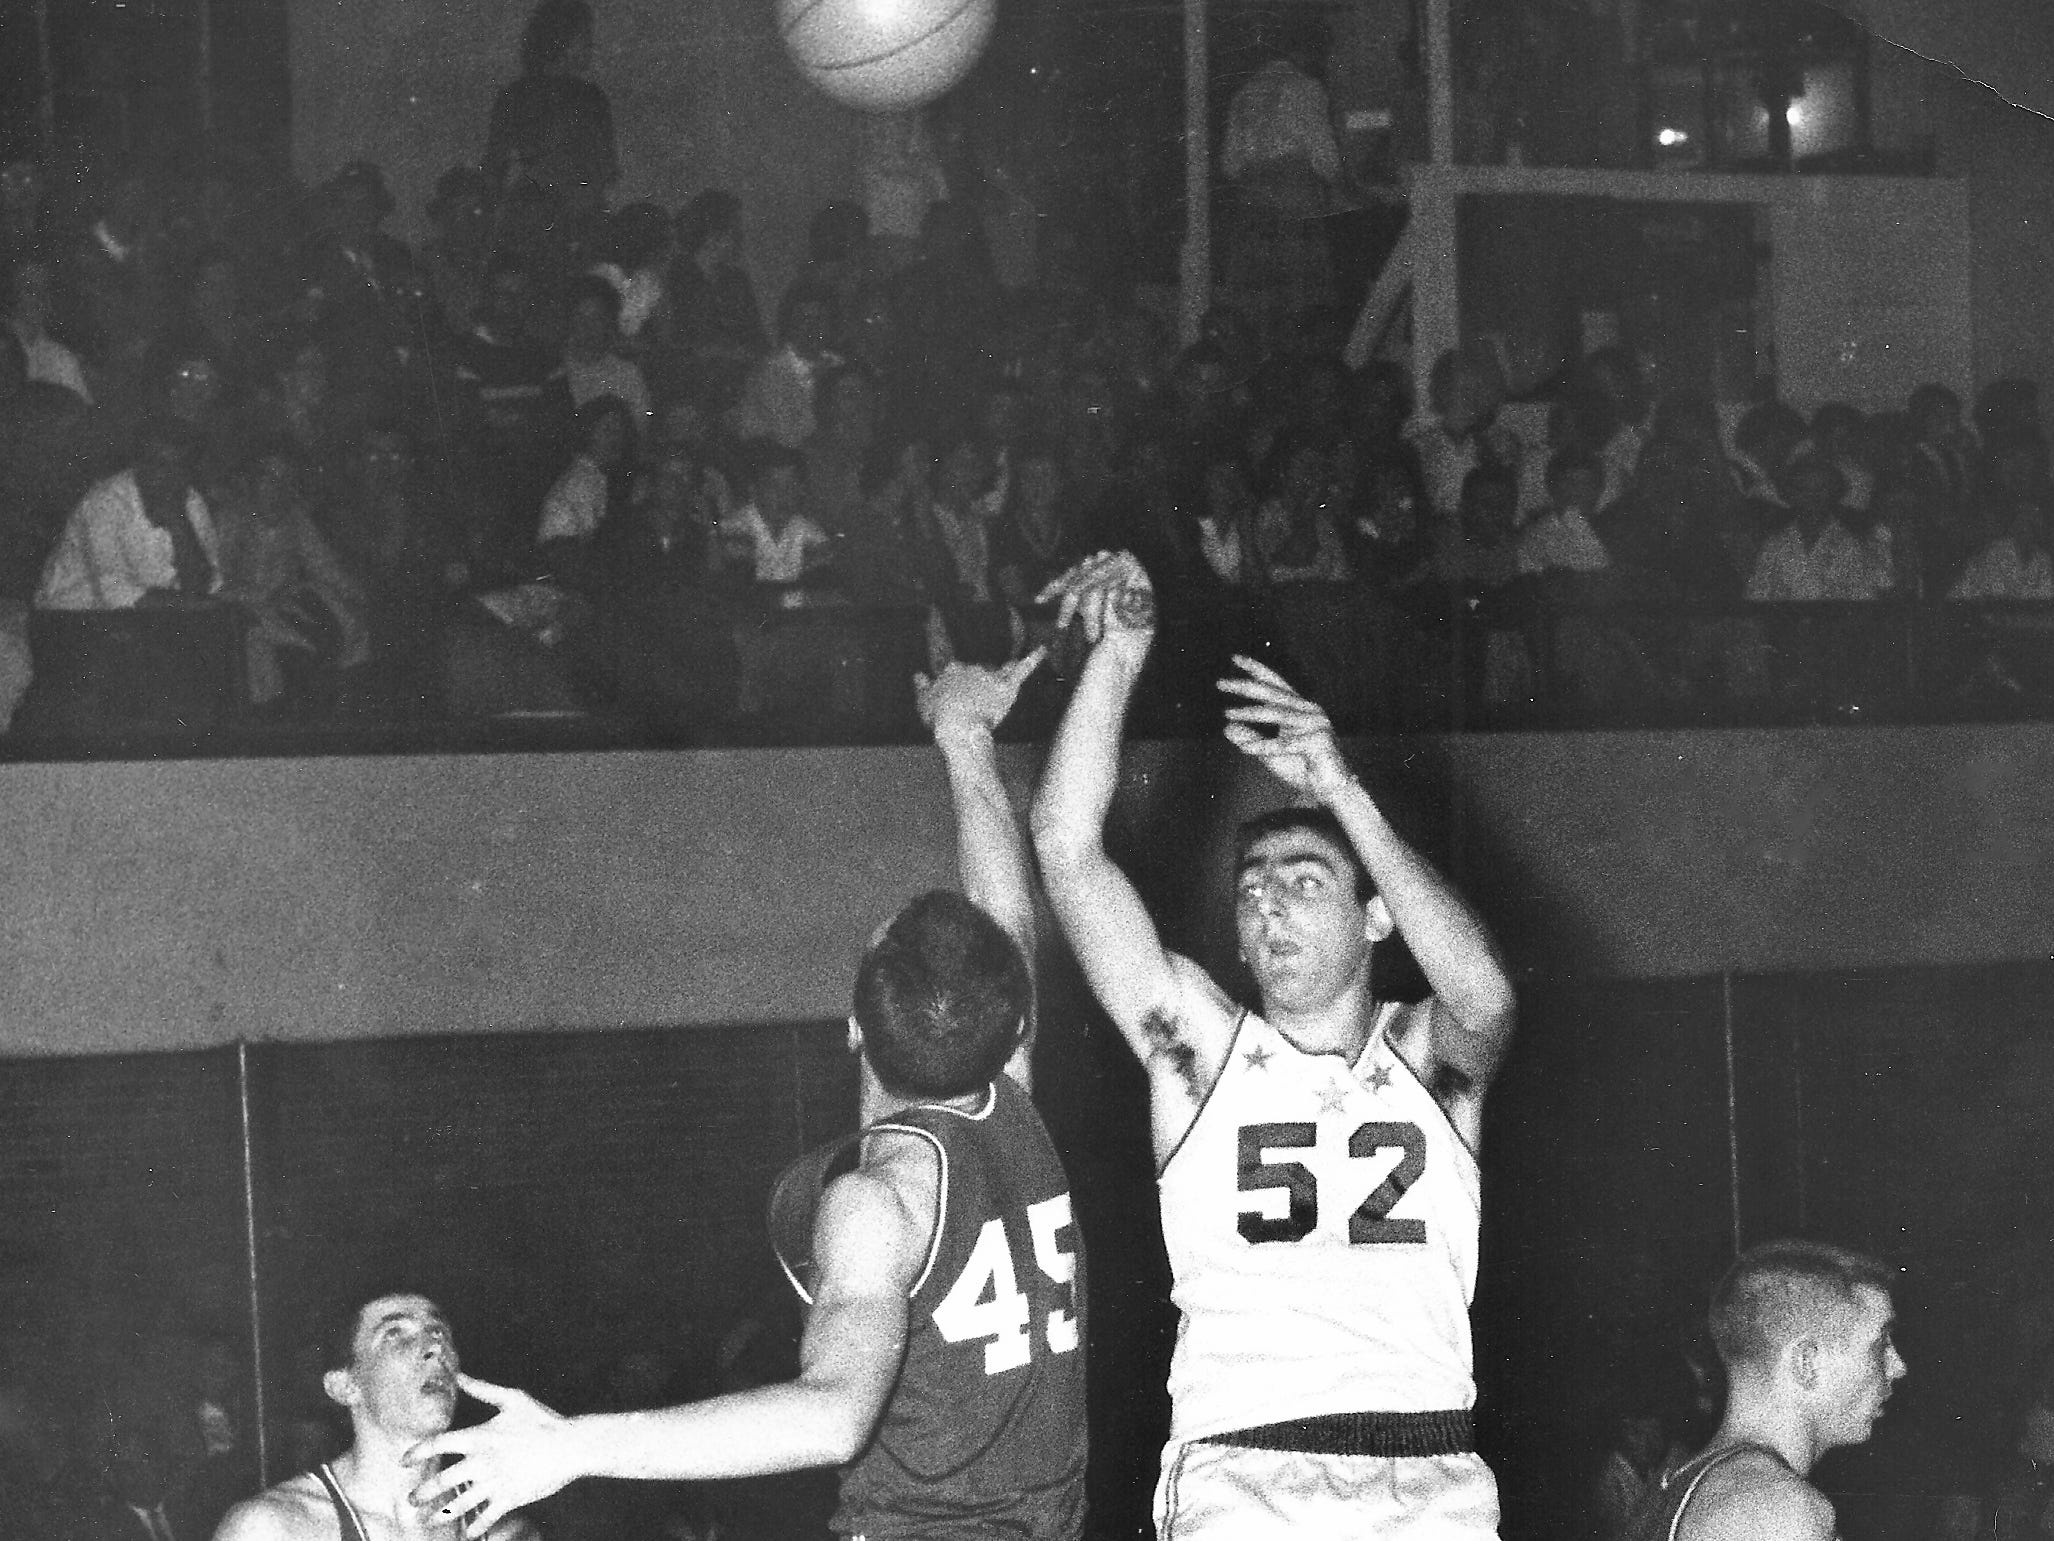 Marion Pierce, No. 52 of Lewisville, set a high school scoring record in 1961 with 3,019 during his high school basketball days in the 1960s